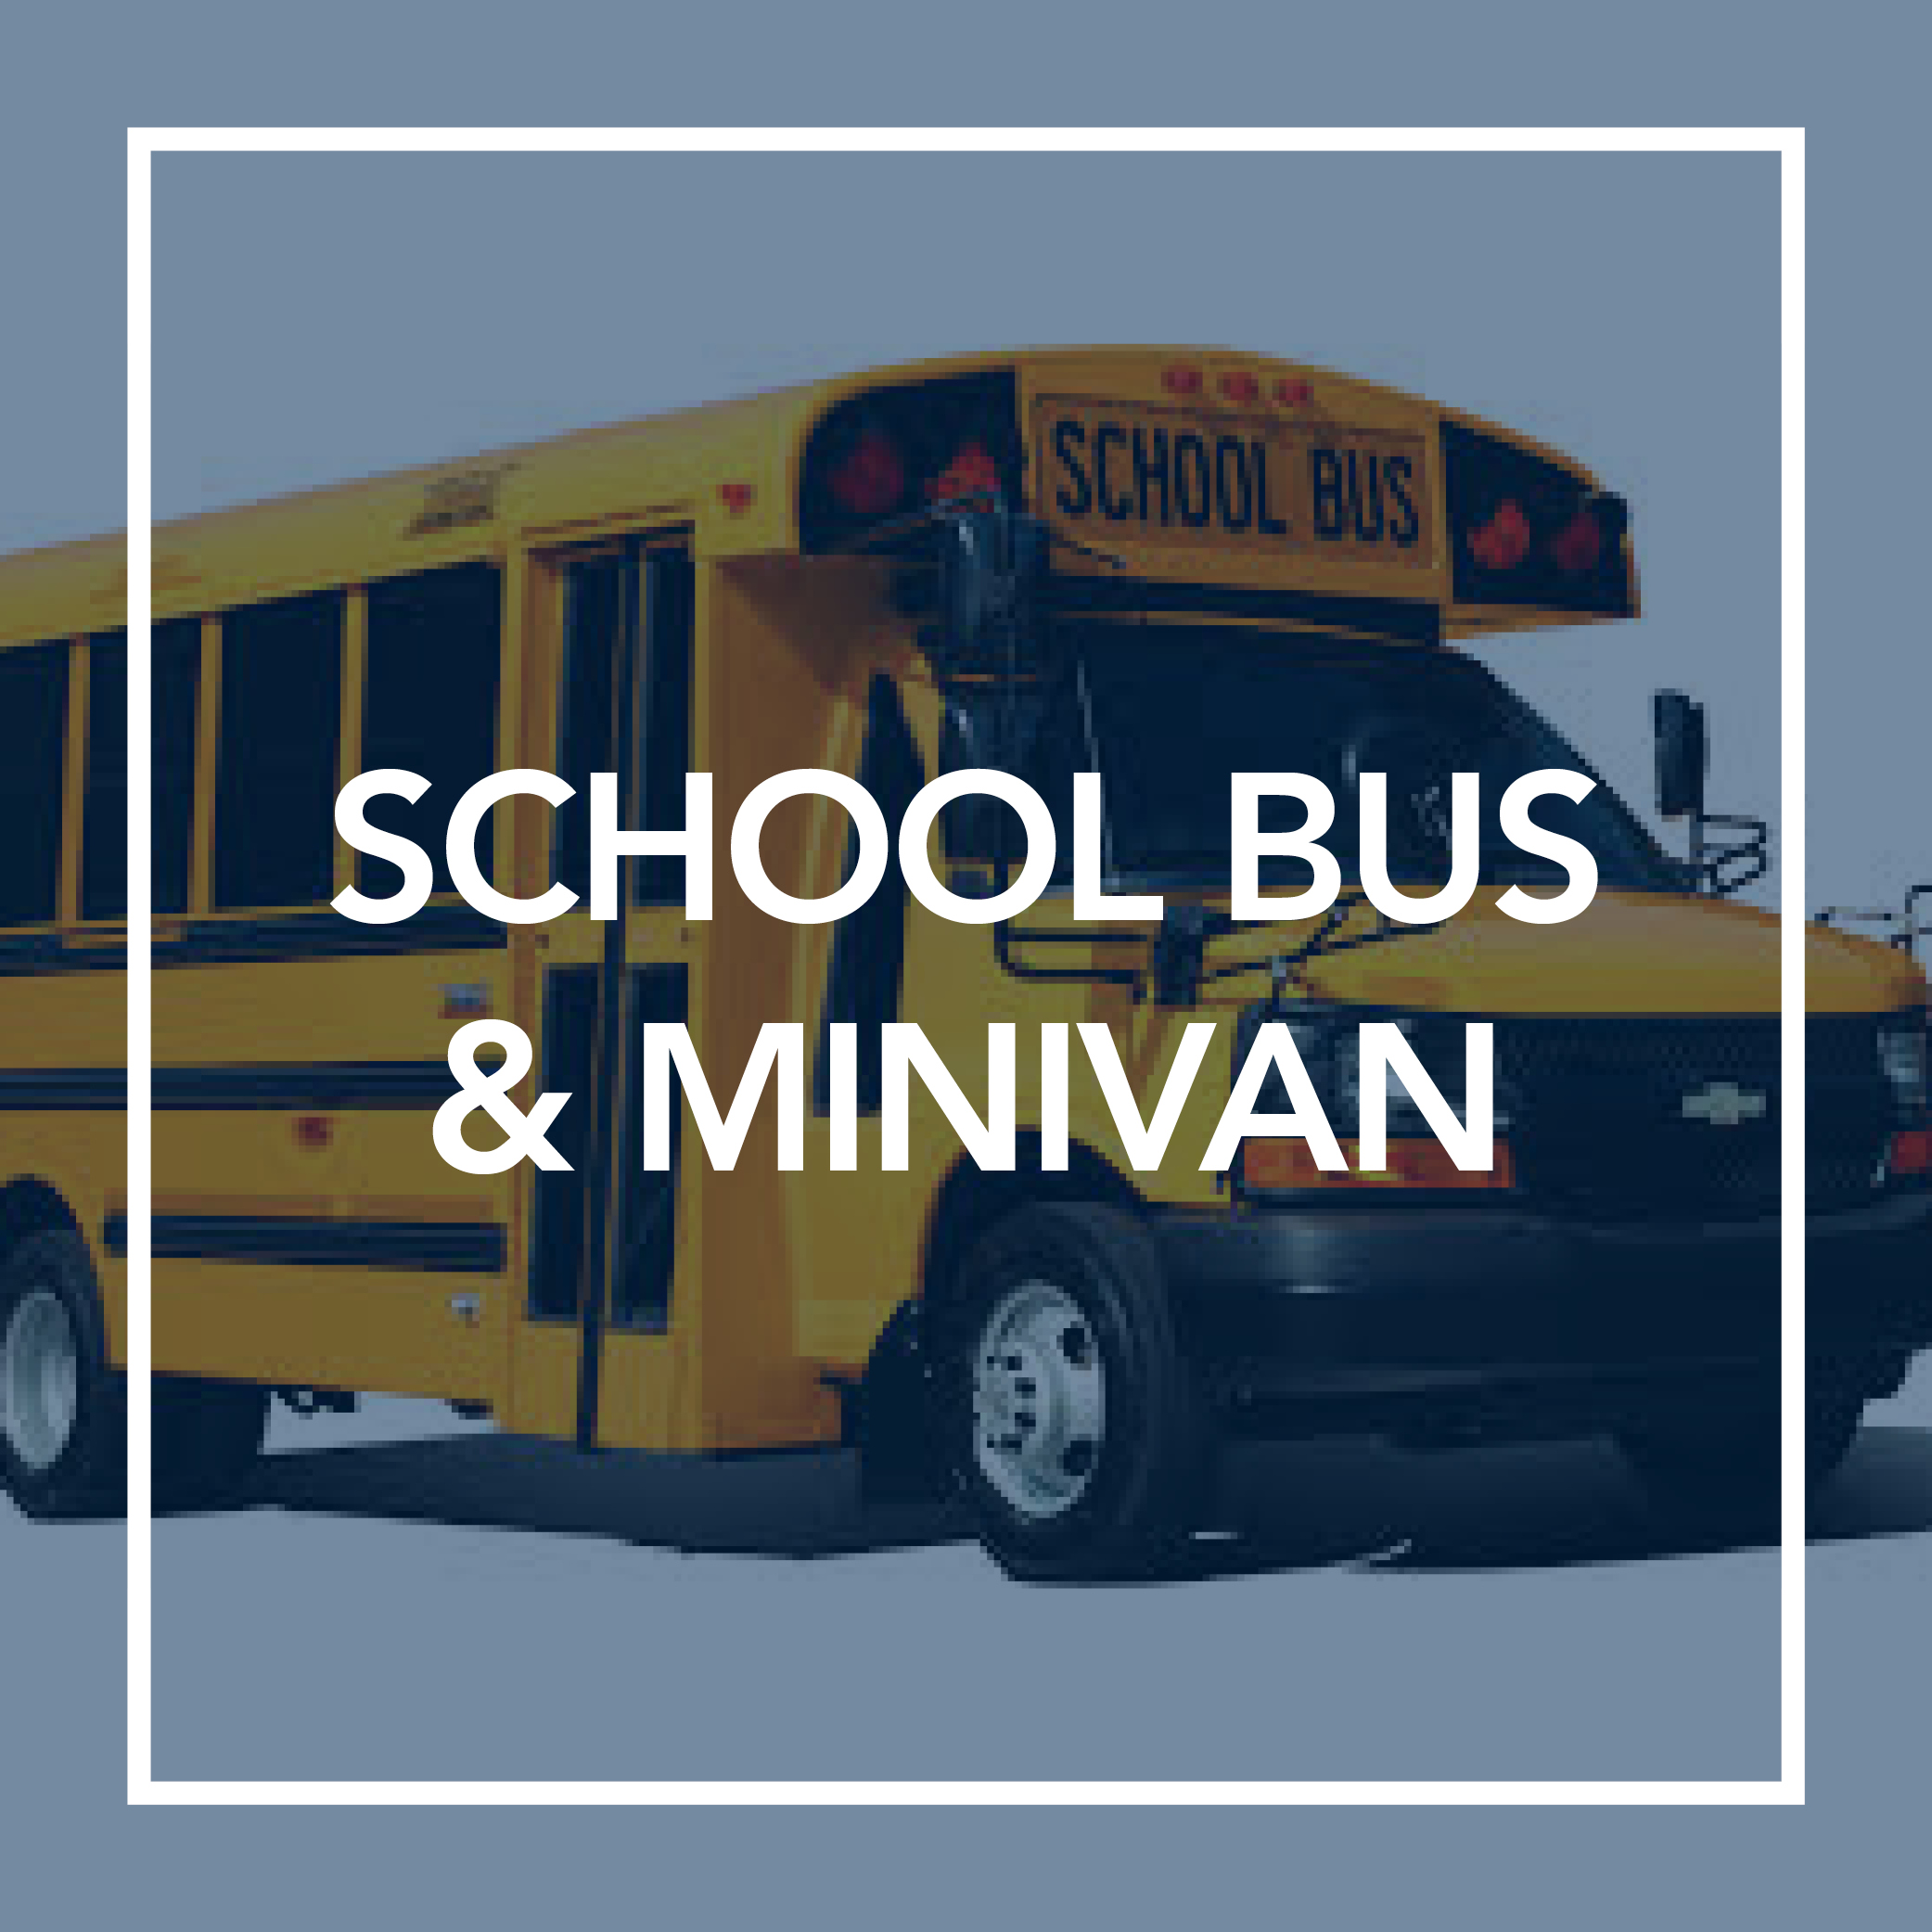 school bus and minivan.jpg